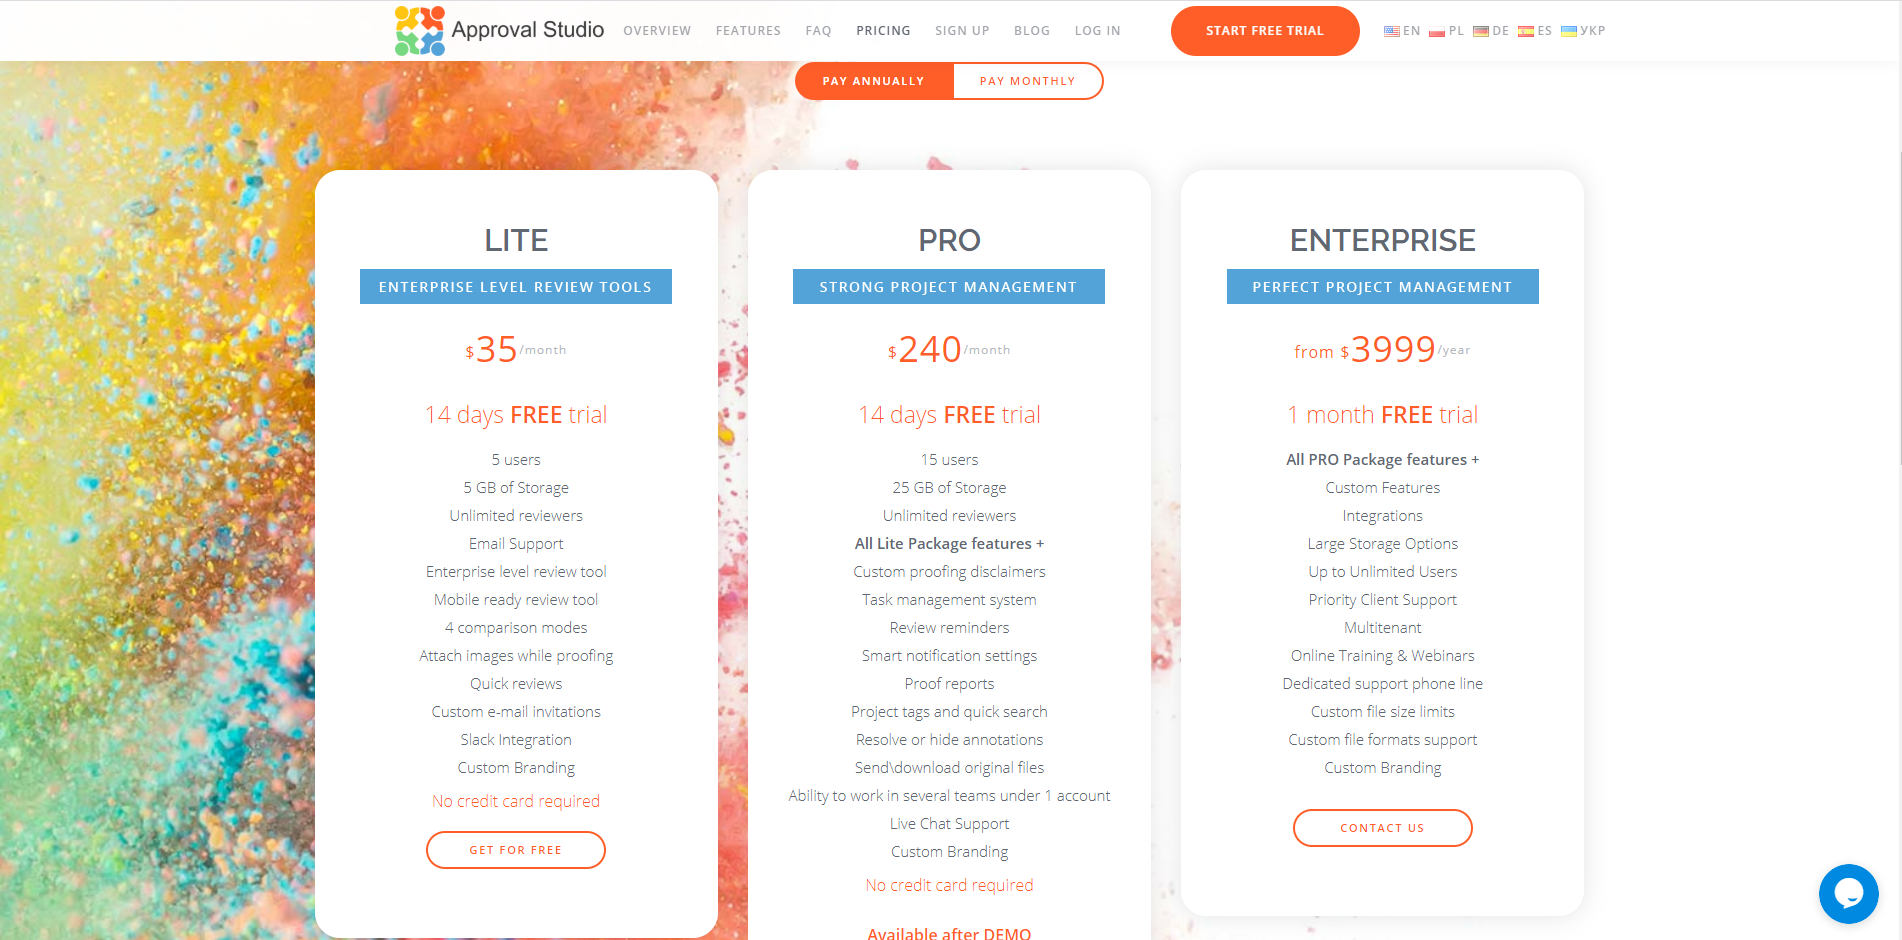 Approval Studio Pricing as of 2020-05-28